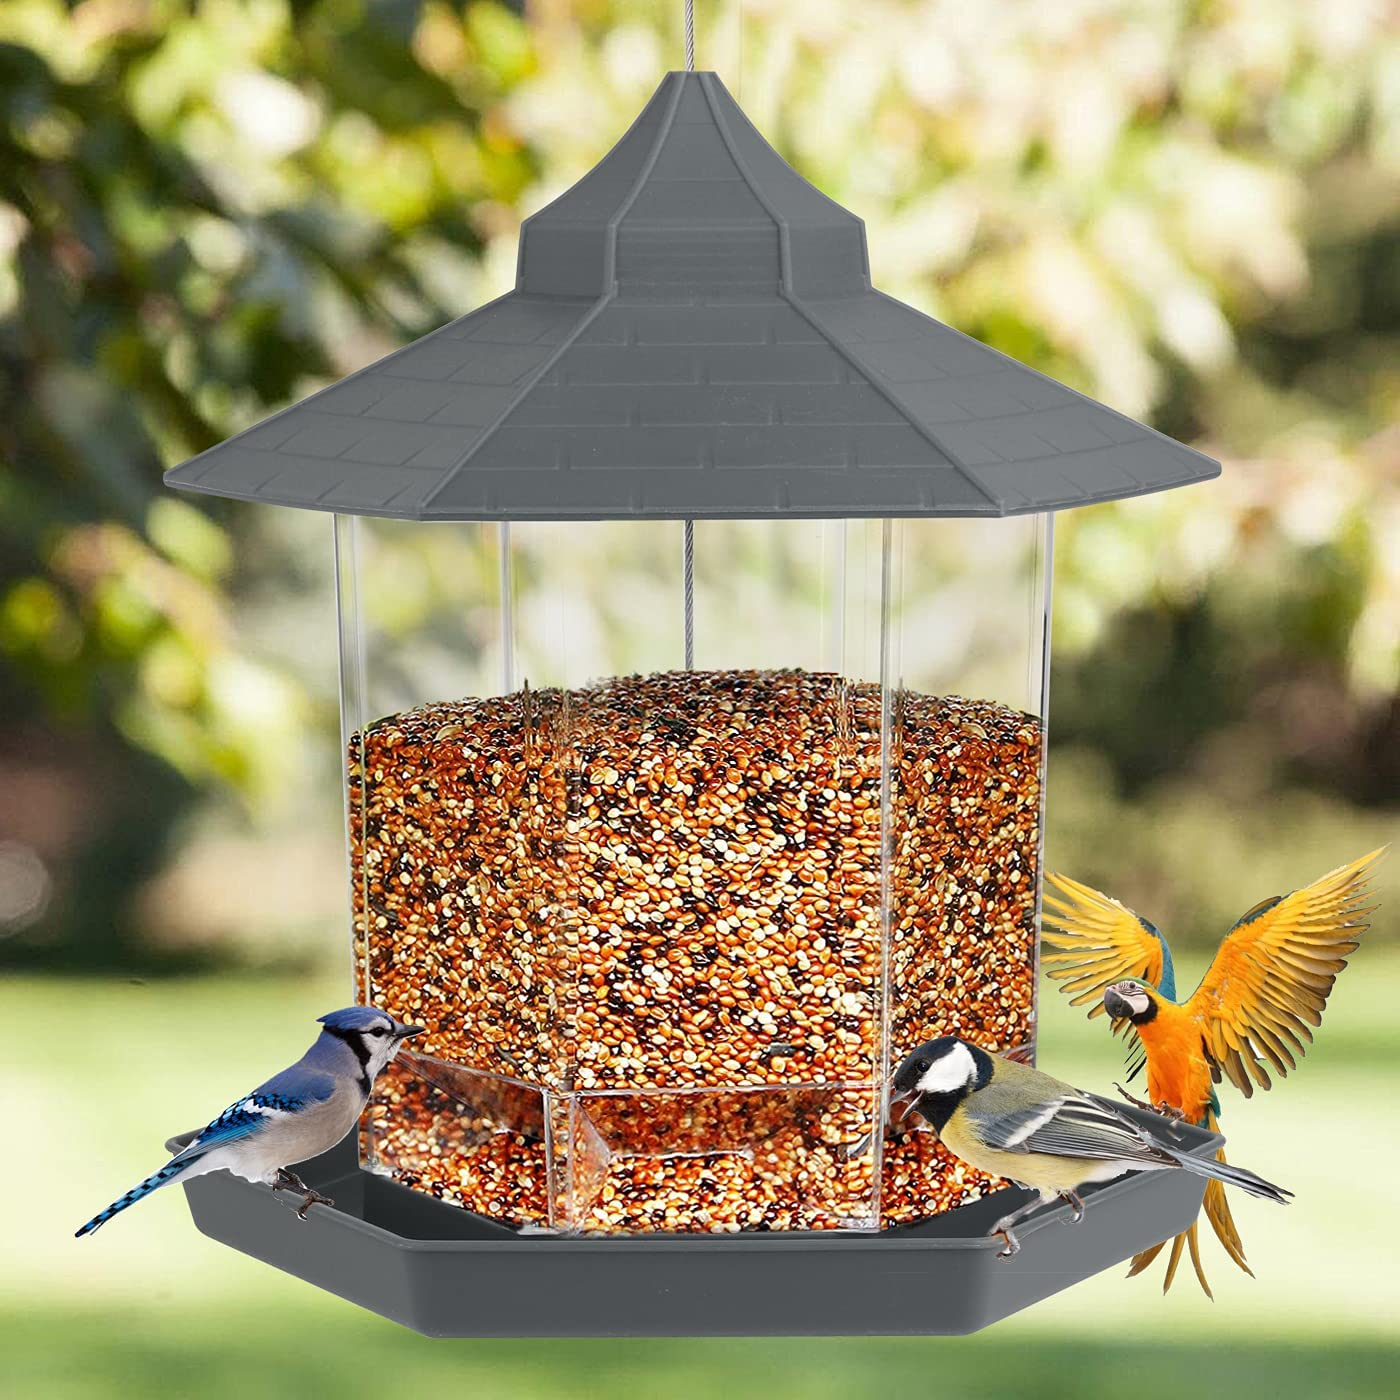 Kuanlok Hanging Wild Bird Feeder, Outside Decoration -Perfect for Attracting Birds on Outdoor Garden Yard, Hexagon Shaped with Roof Avoid Water (Gray)